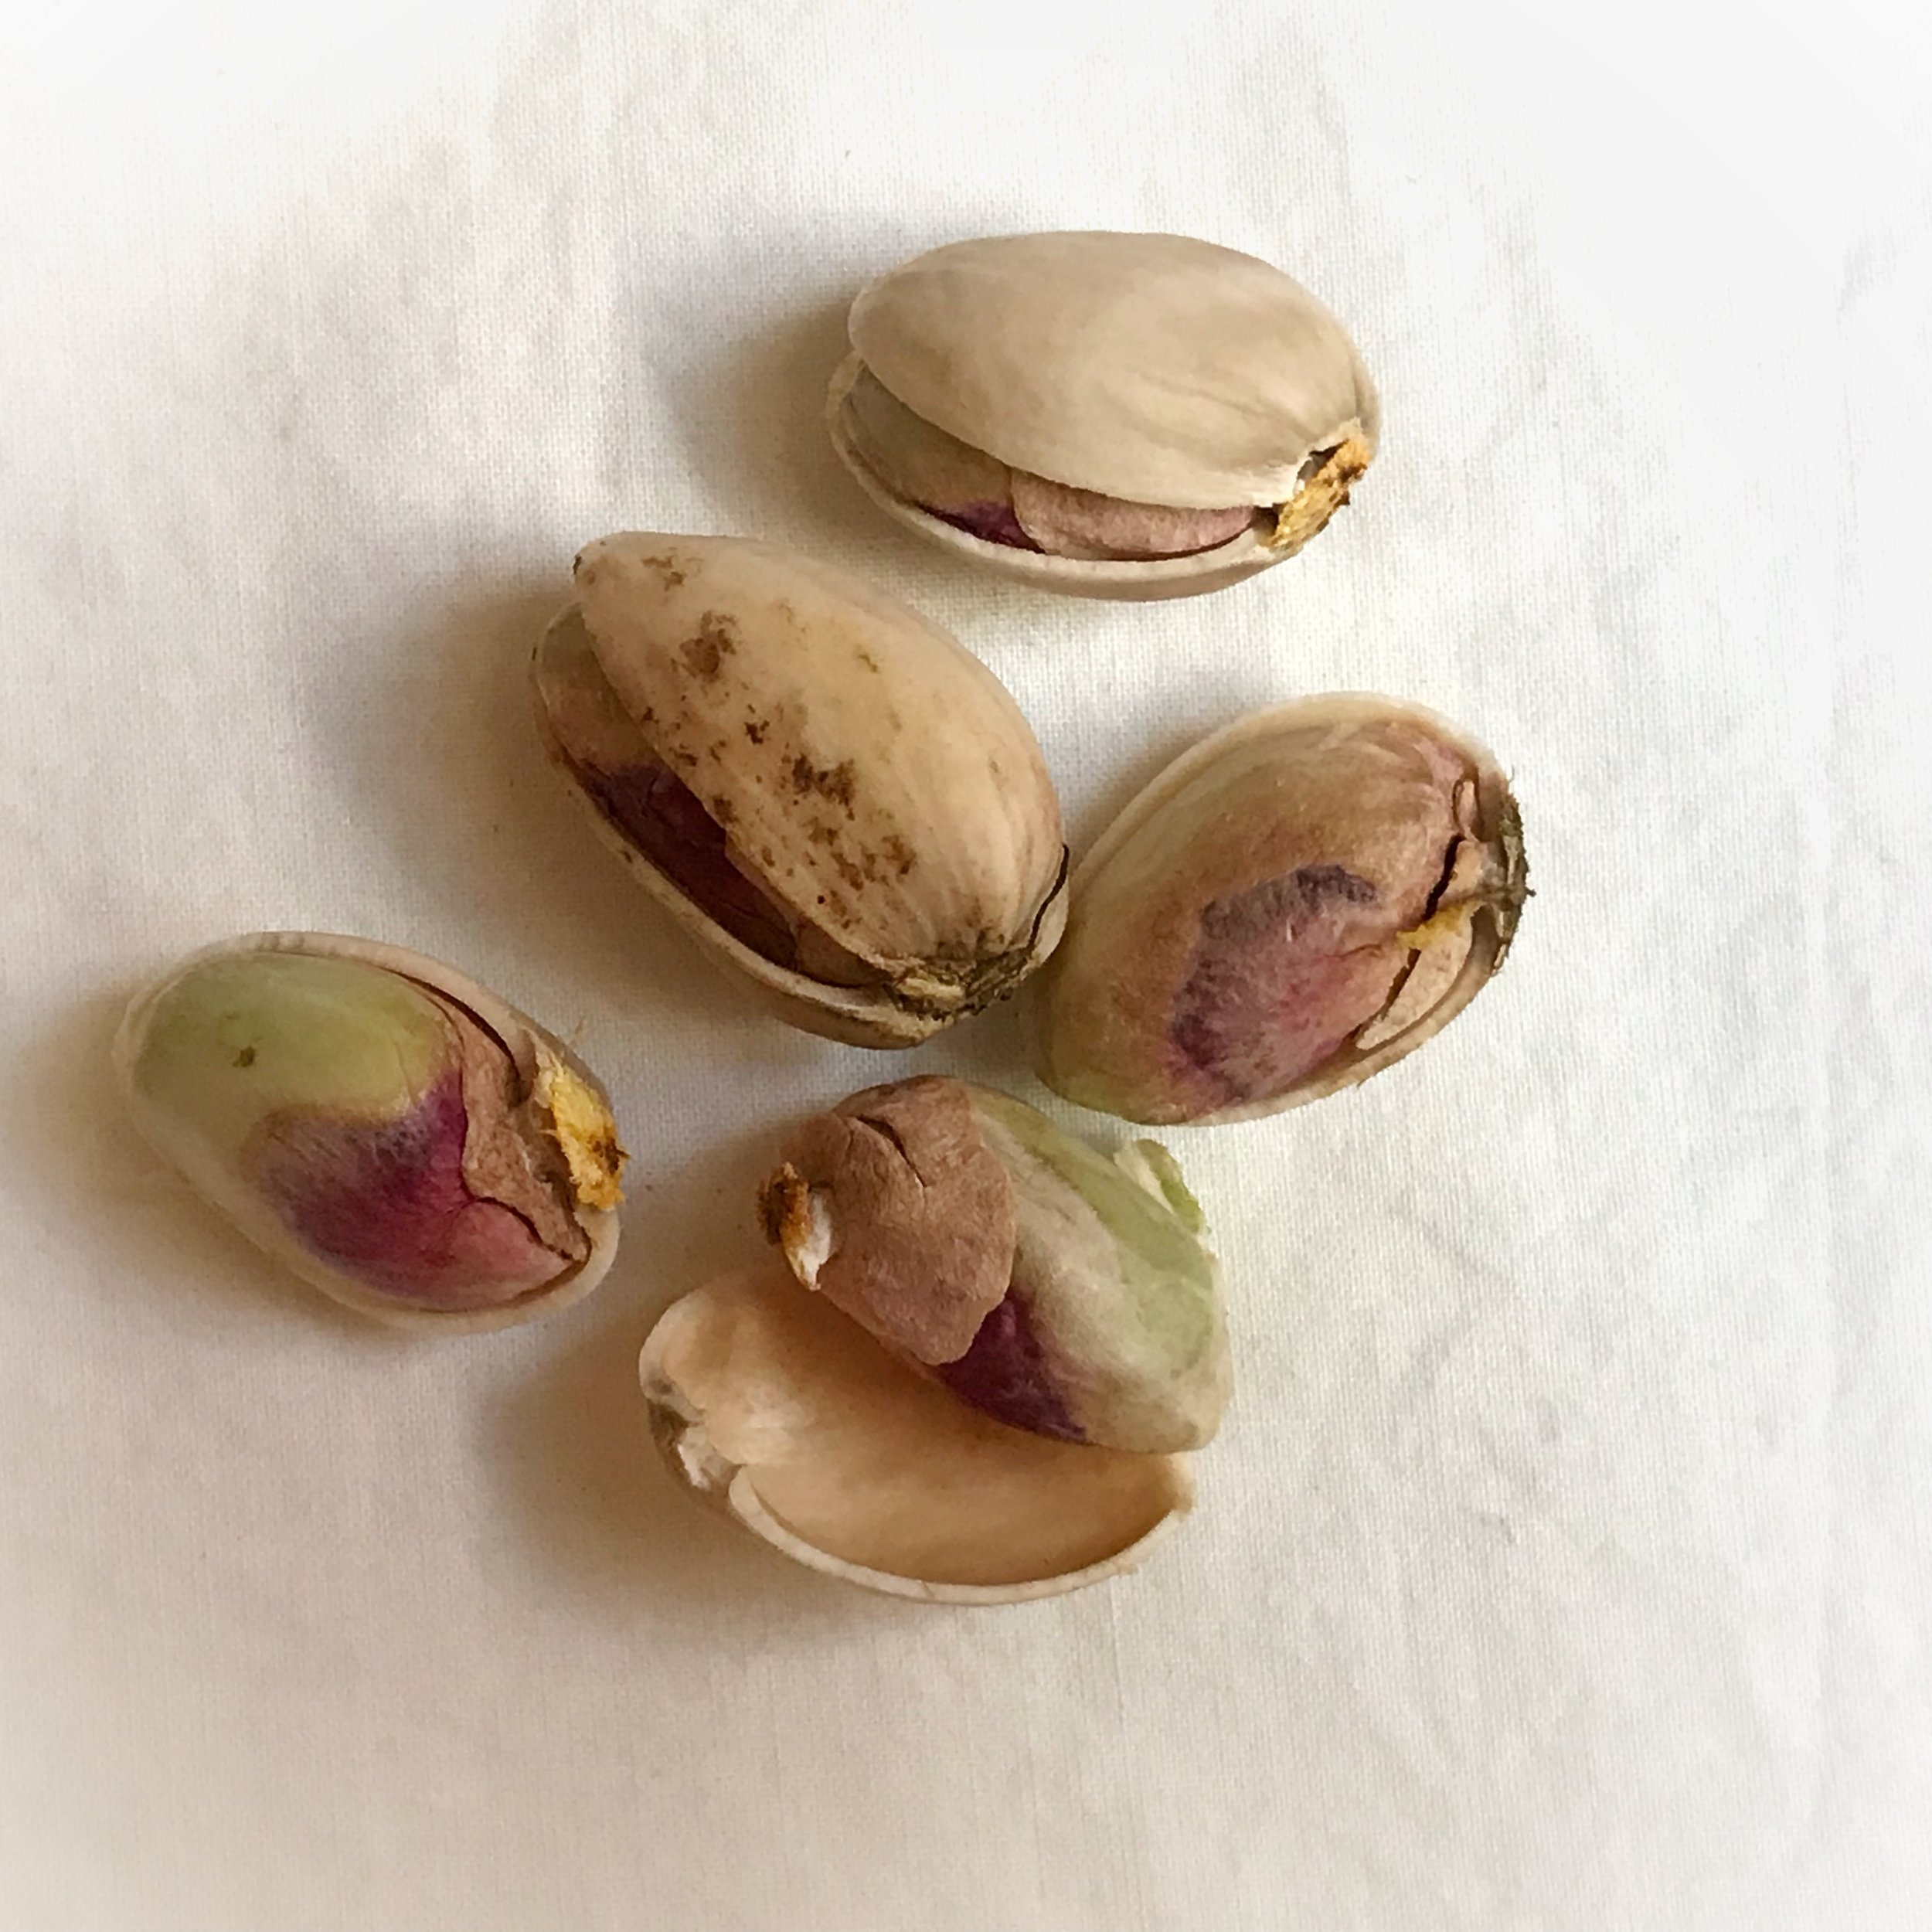 Fresh pistachios in and out of their shells. The top one is  khandan  – smiling.